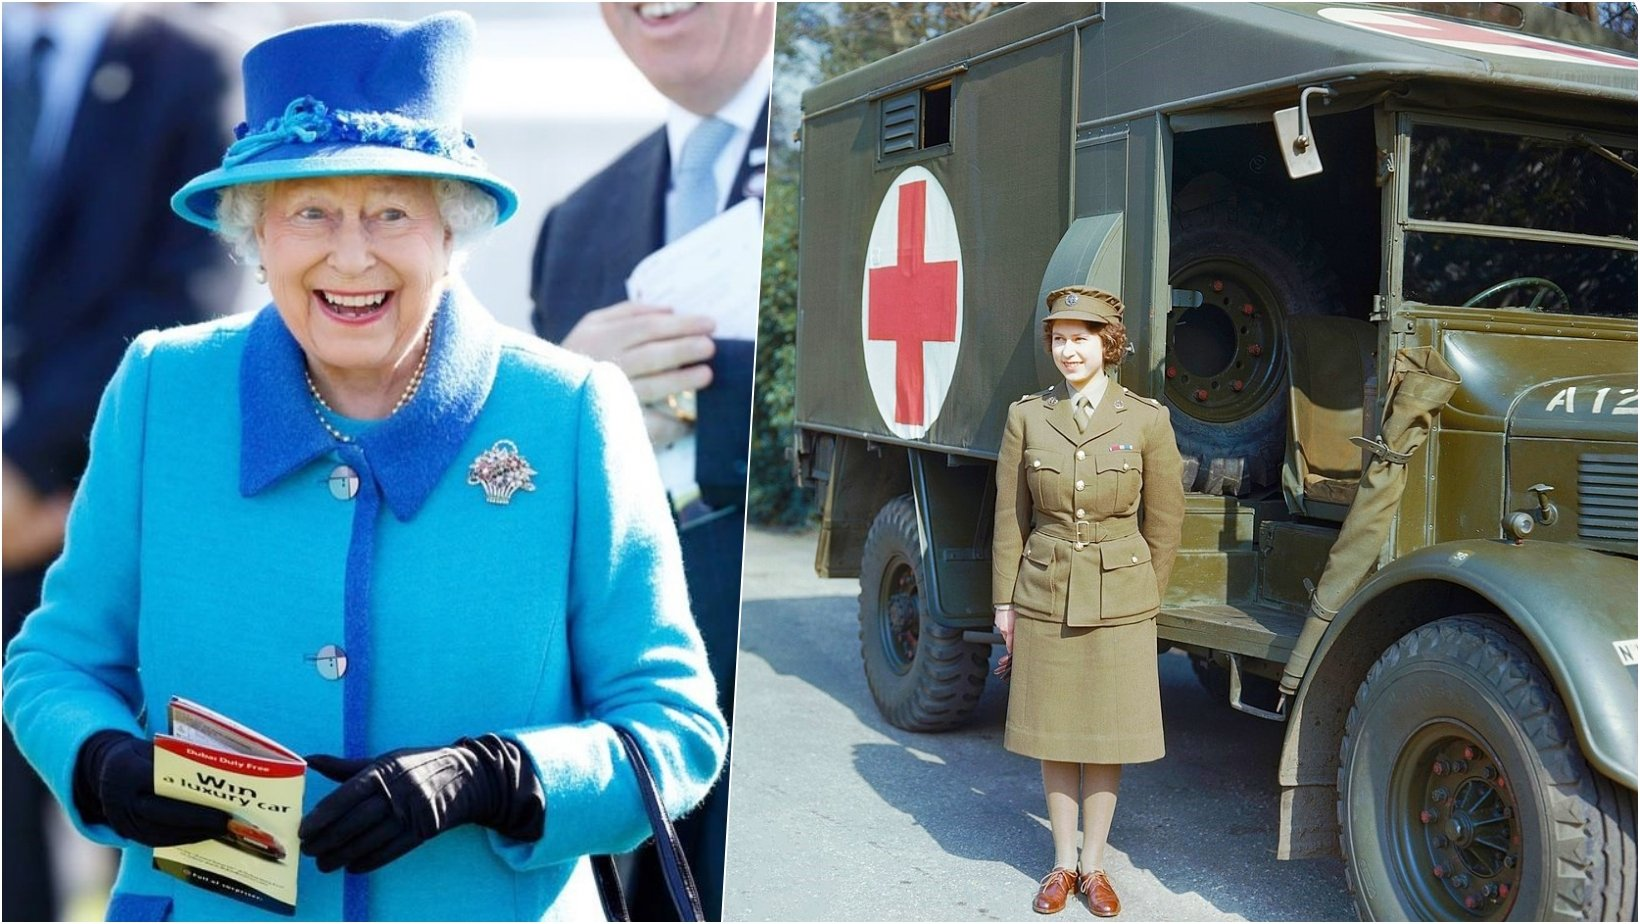 6 facebook cover 13.jpg?resize=412,275 - The Queen's Real Name Has A Special Meaning, But The Reason Why She Rarely Uses It In Full Explains A Lot About Her Life As A Royal